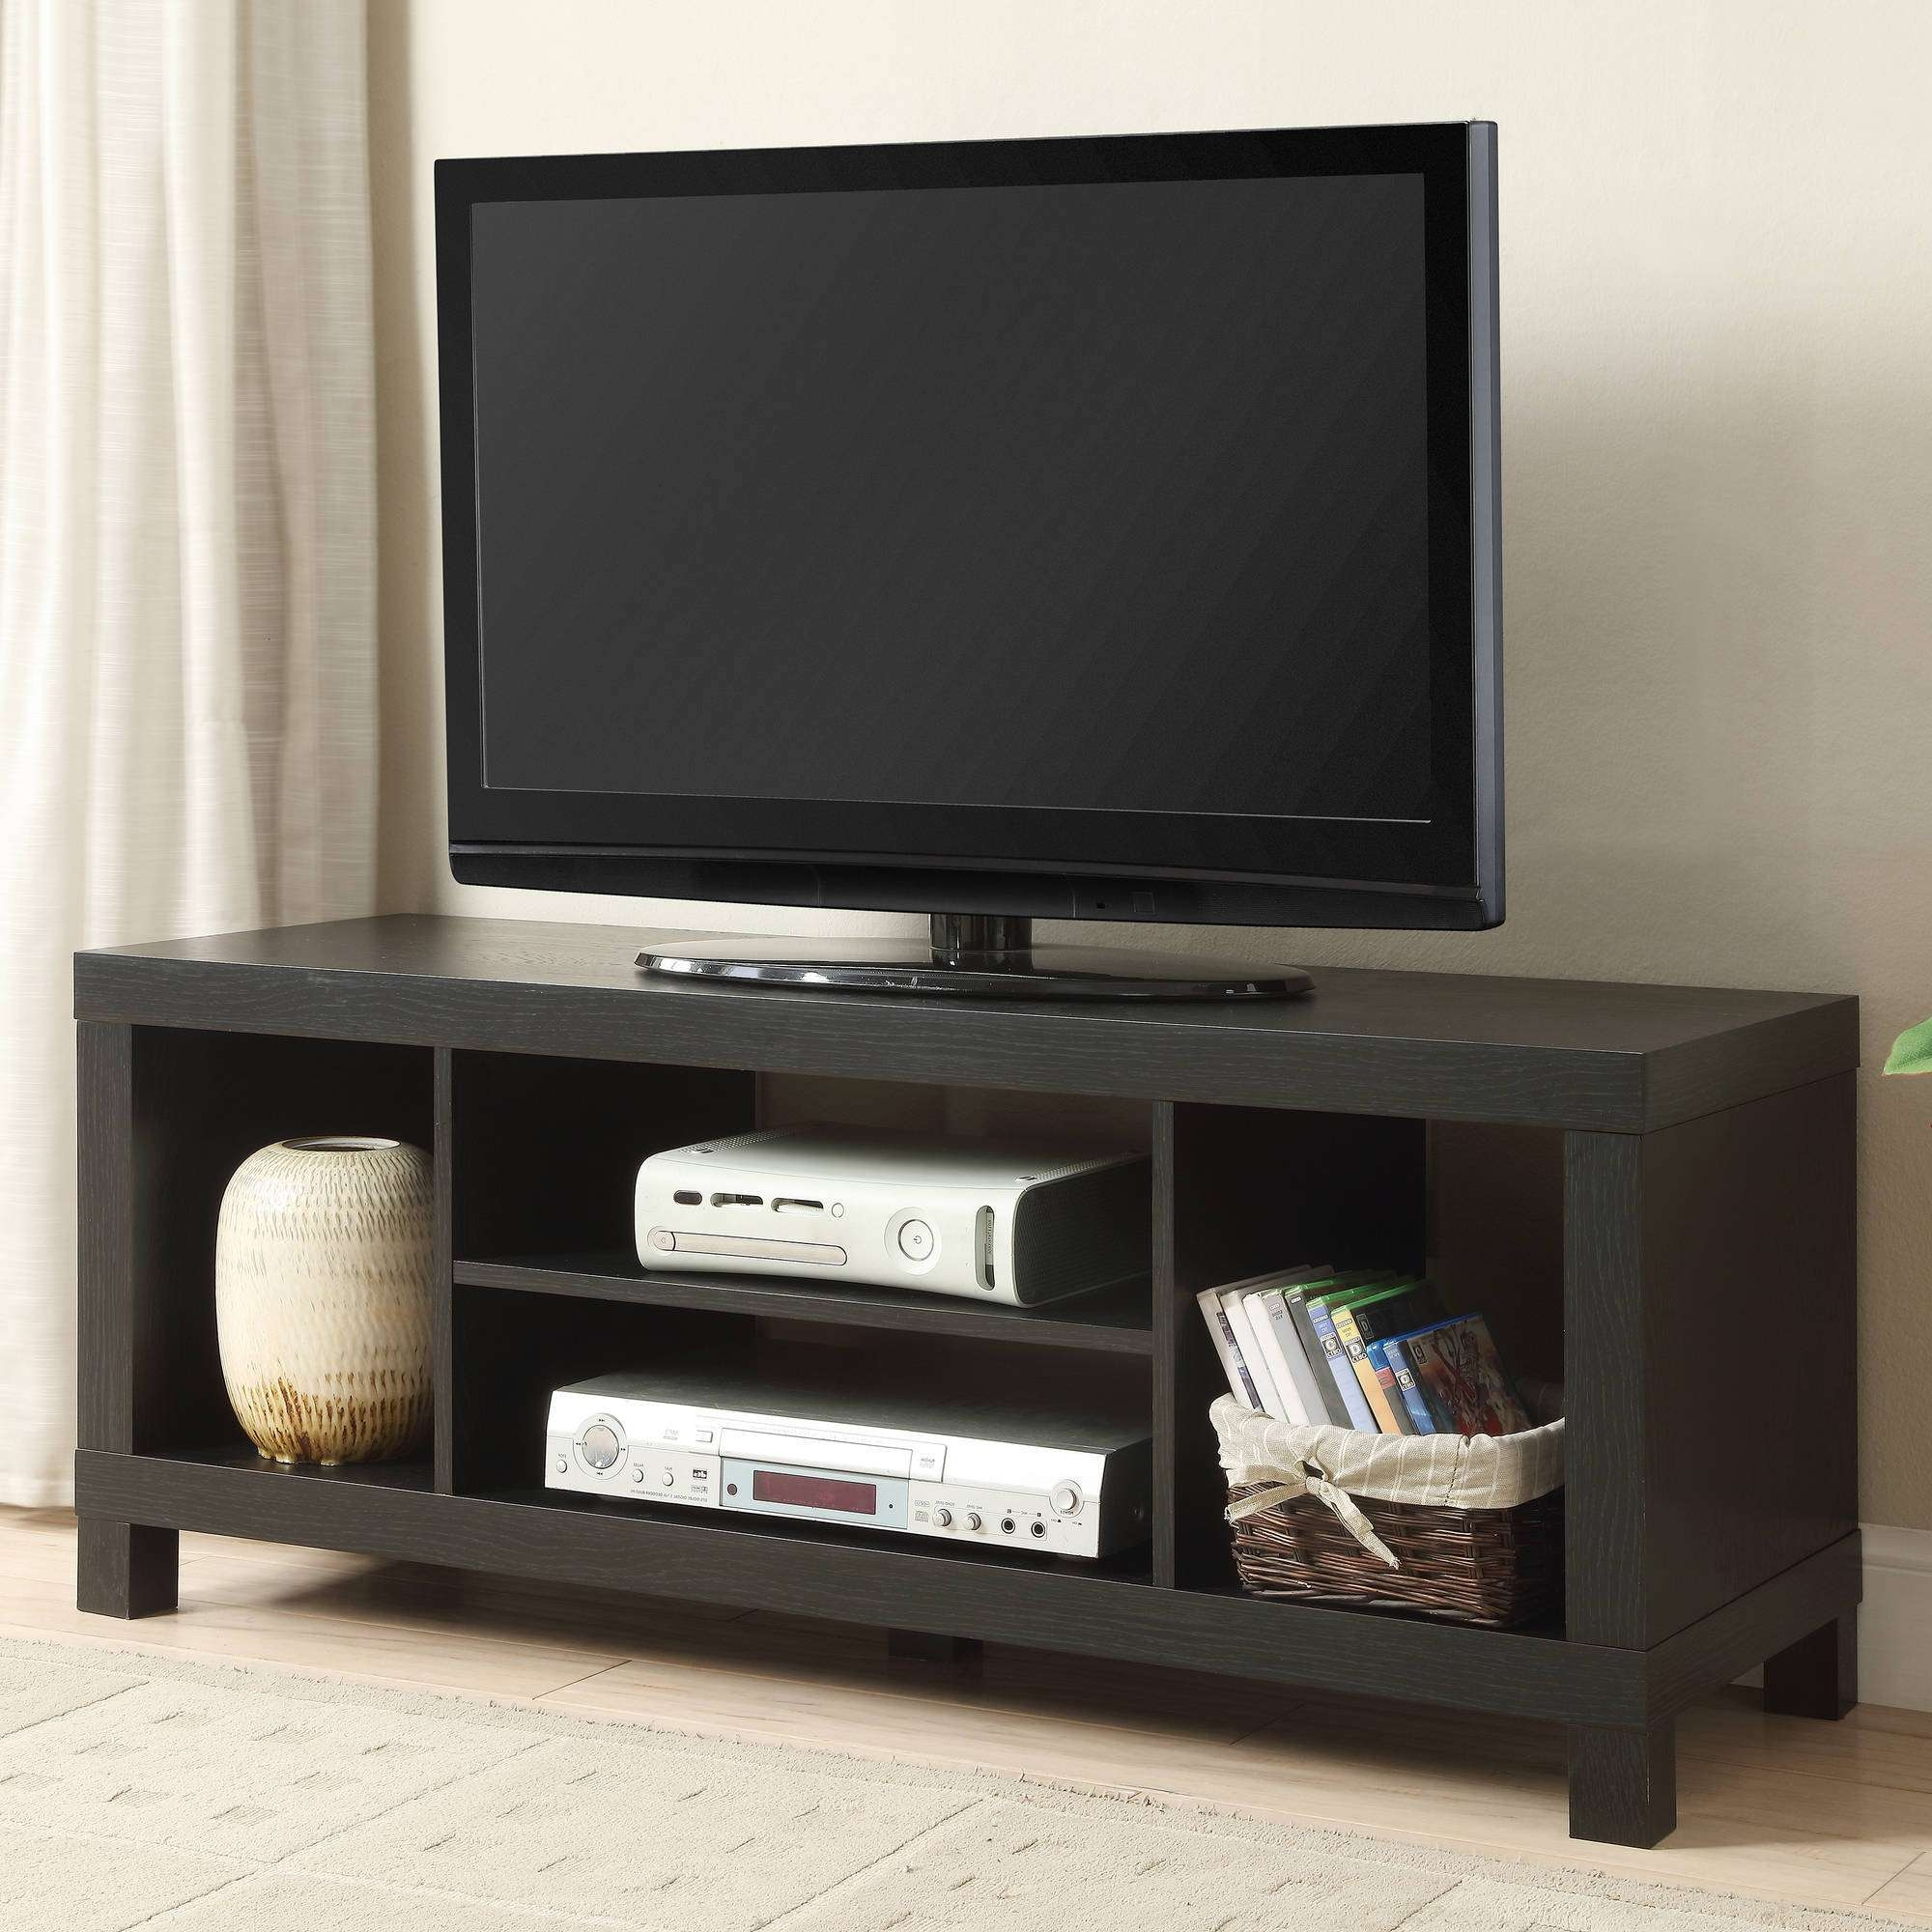 Tv Stands – Walmart In Tv Stands For 43 Inch Tv (View 9 of 15)